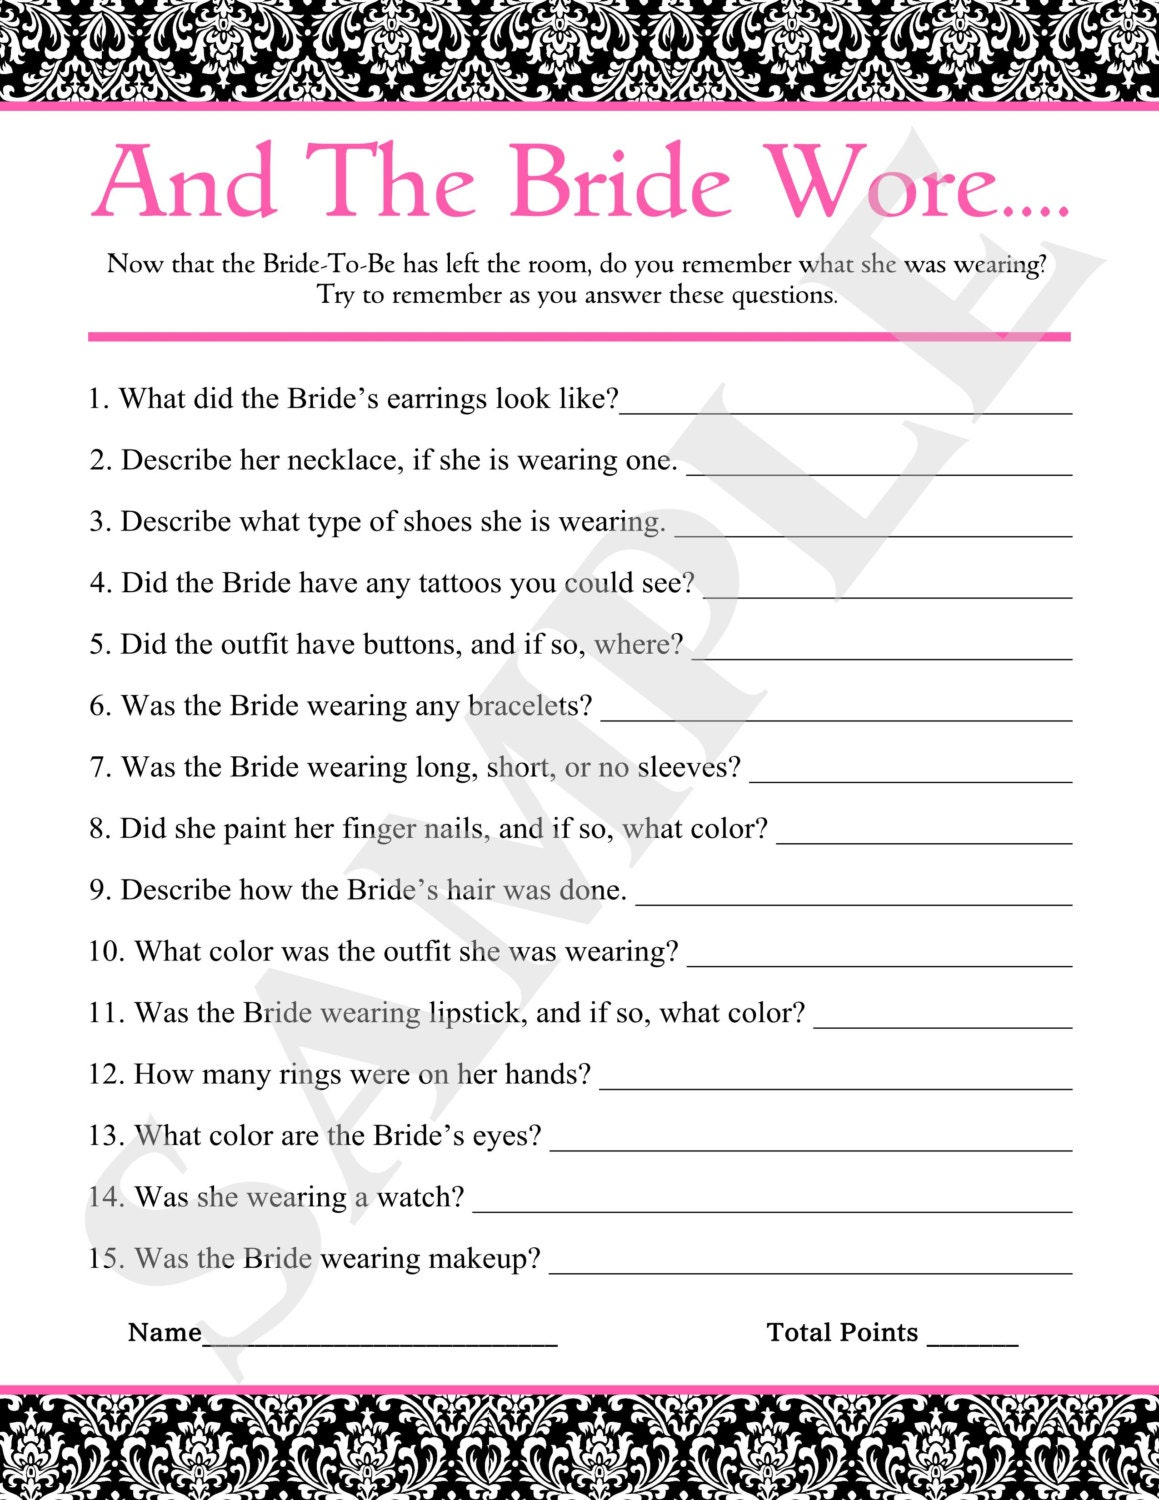 And the Bride wore... Printable Cards Bridal Shower Game ...